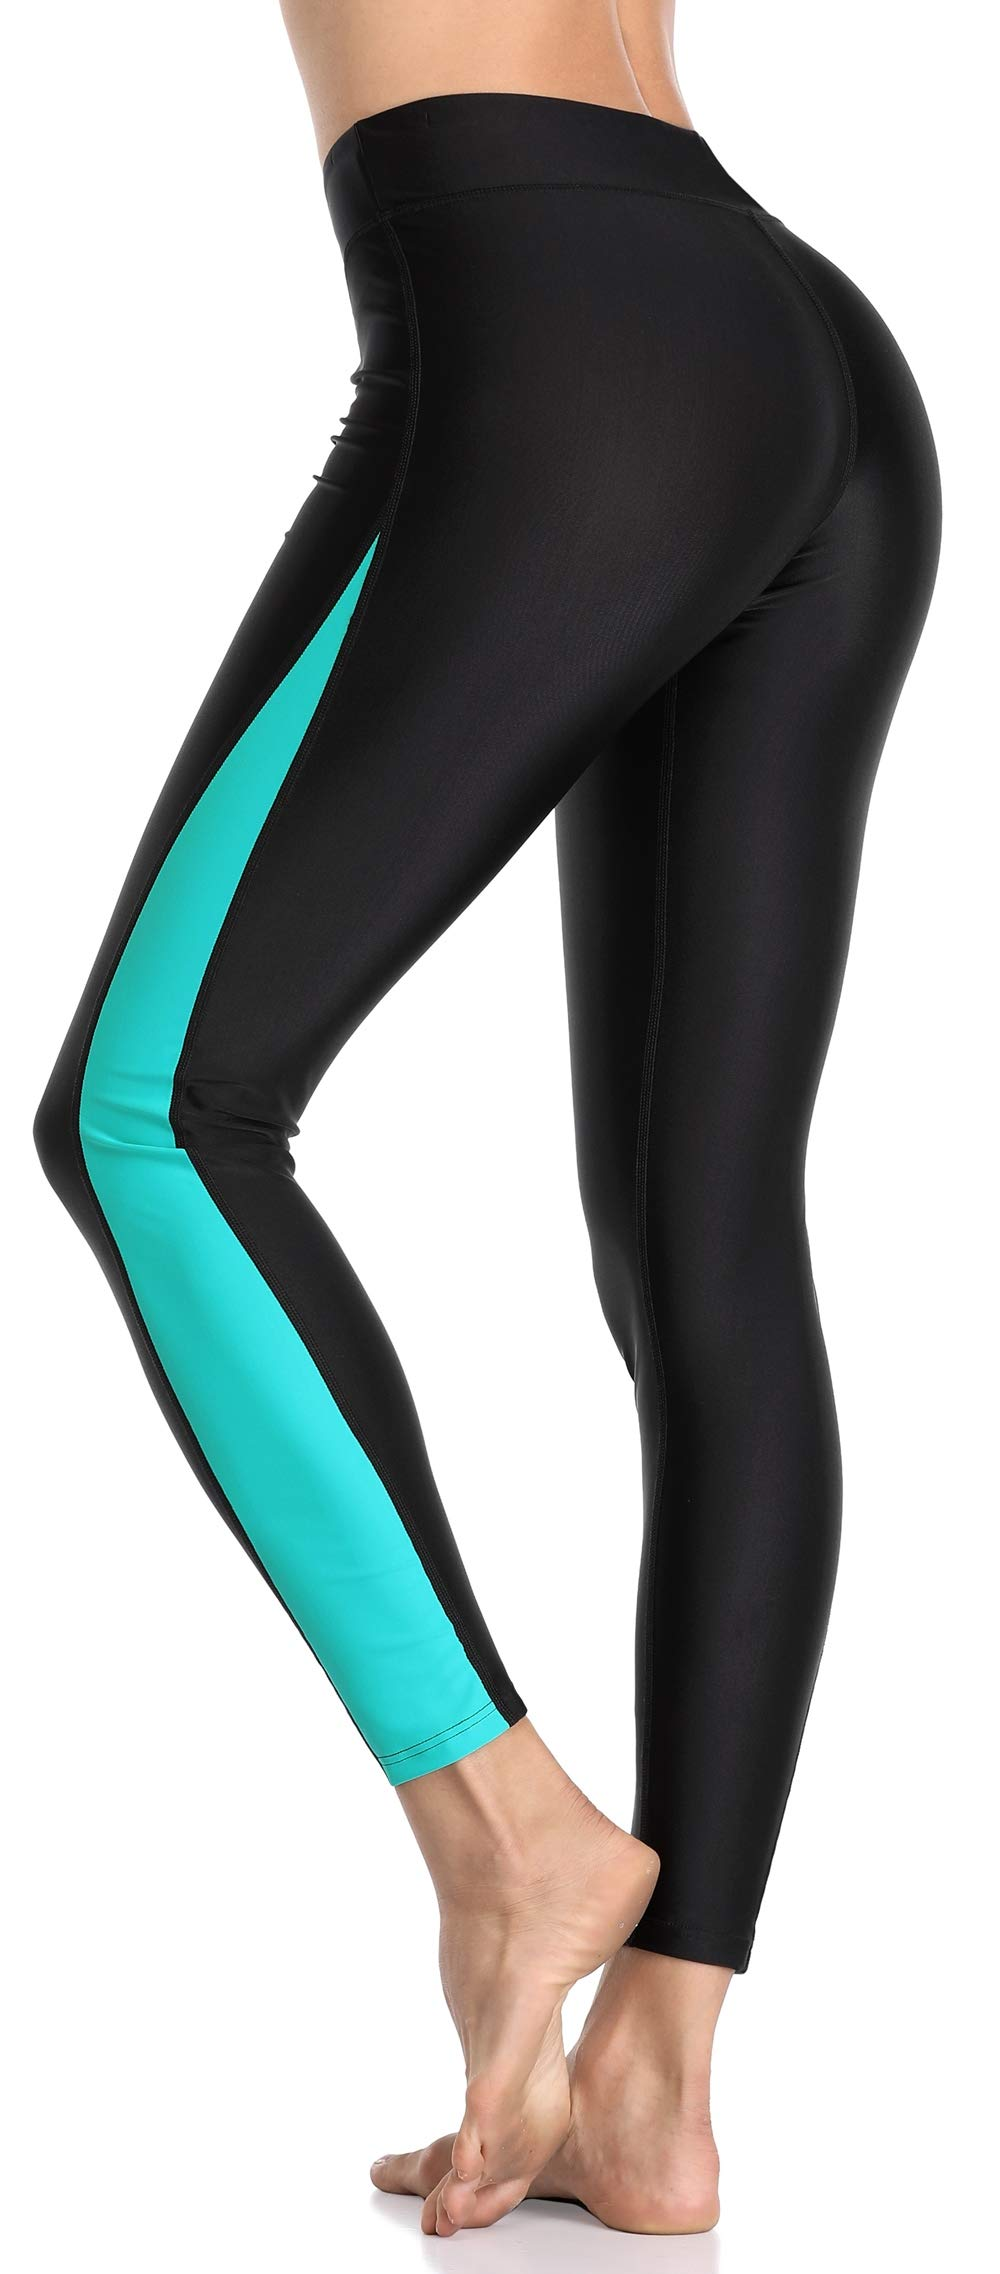 ATTRACO Womens Hiking Pants UPF 50+ Swim Tights Wetsuit Pants Leggings Aqua Small by ATTRACO